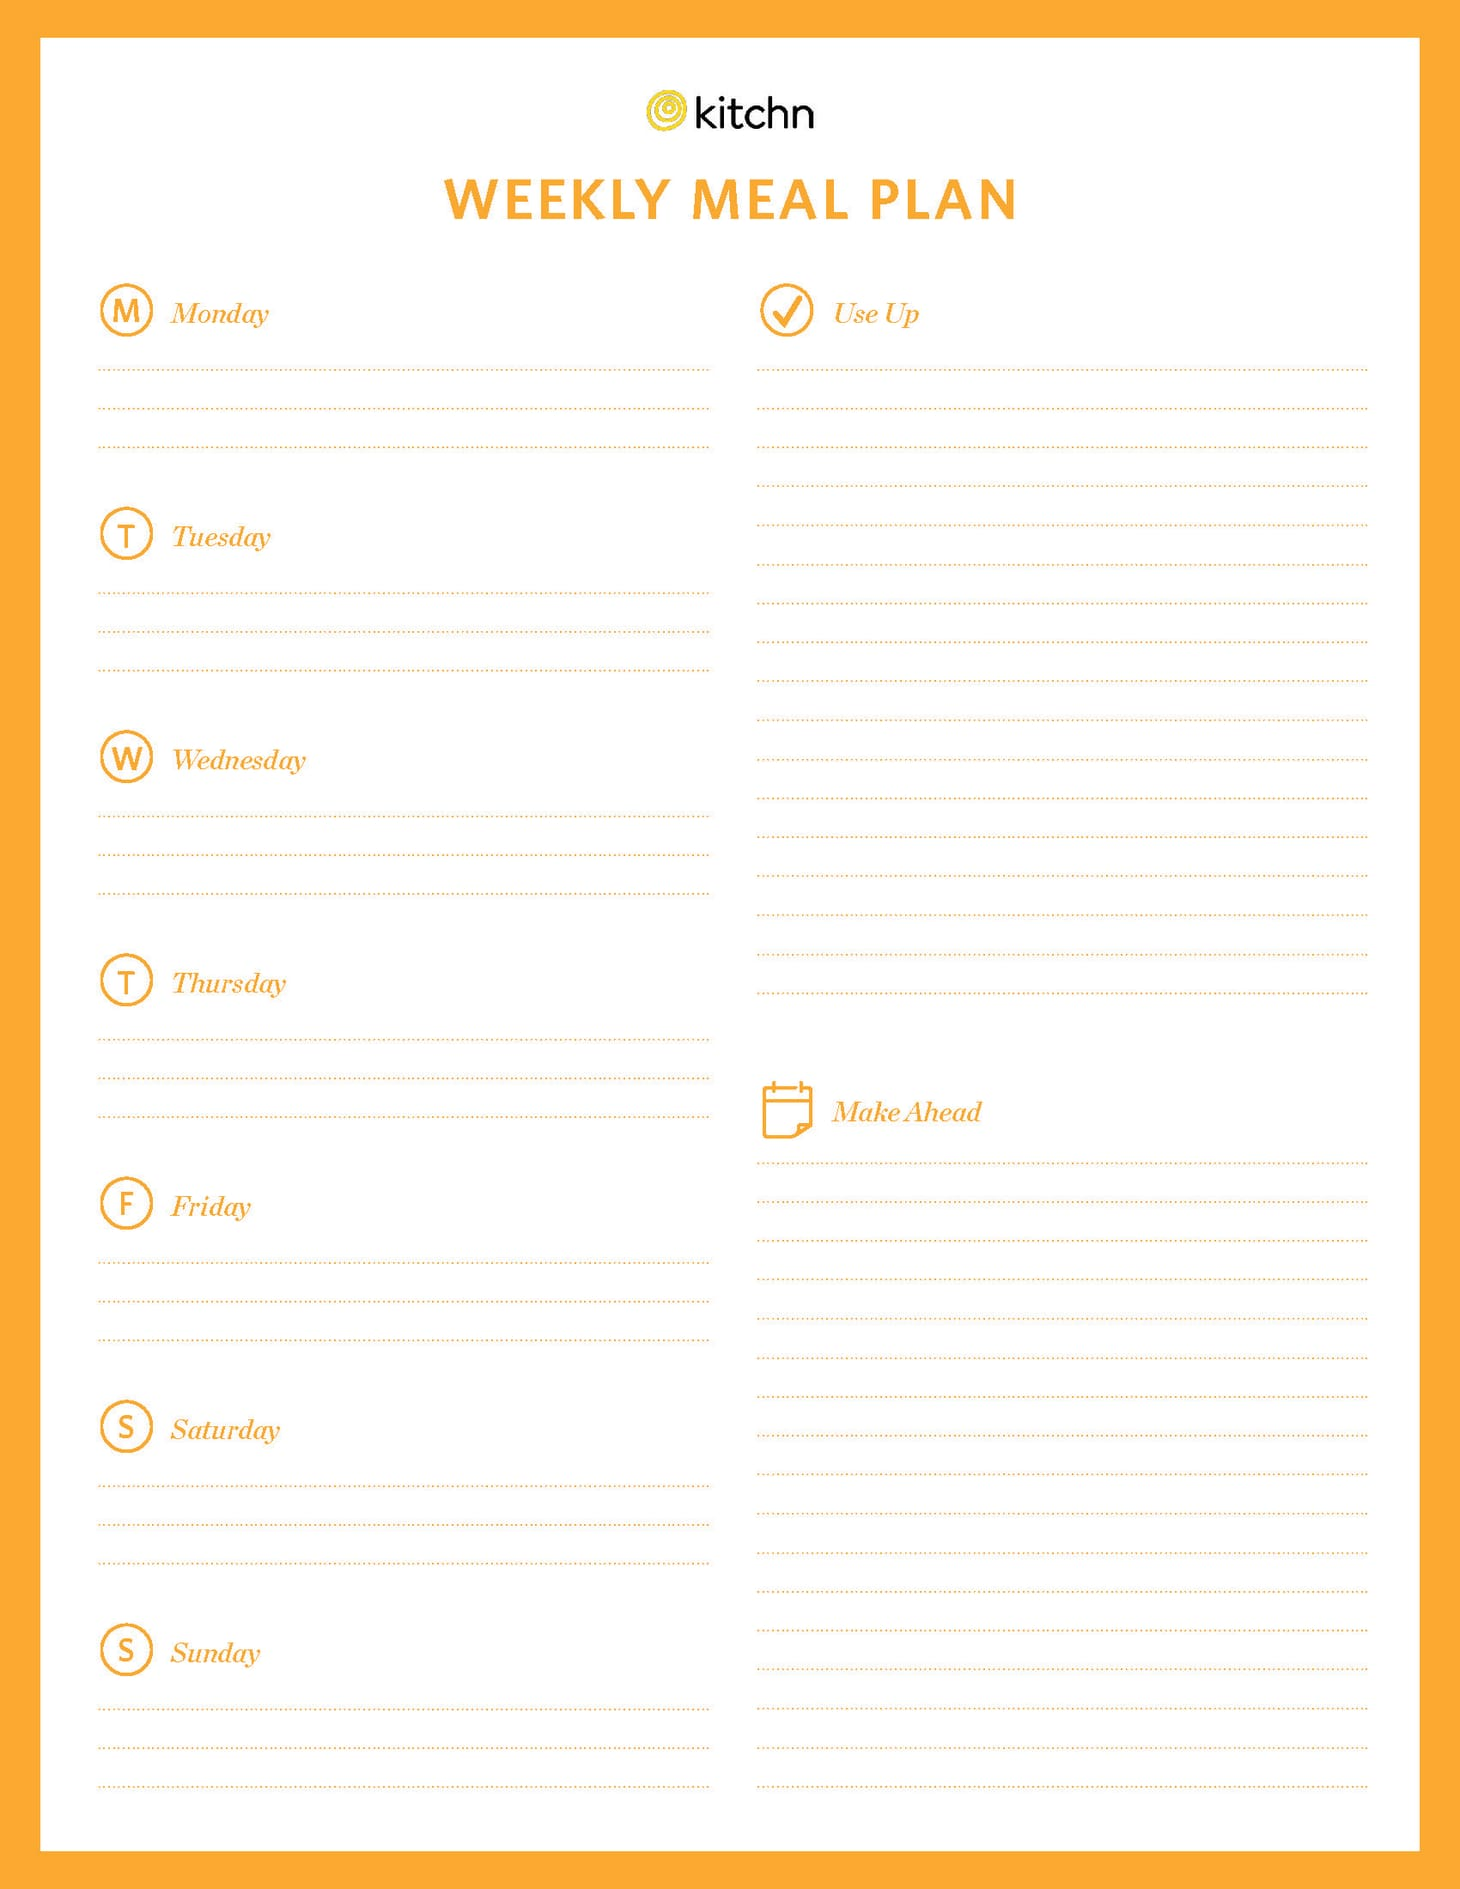 image relating to Printable Weekly Meal Planner named Kitchns Dinner System Template Kitchn